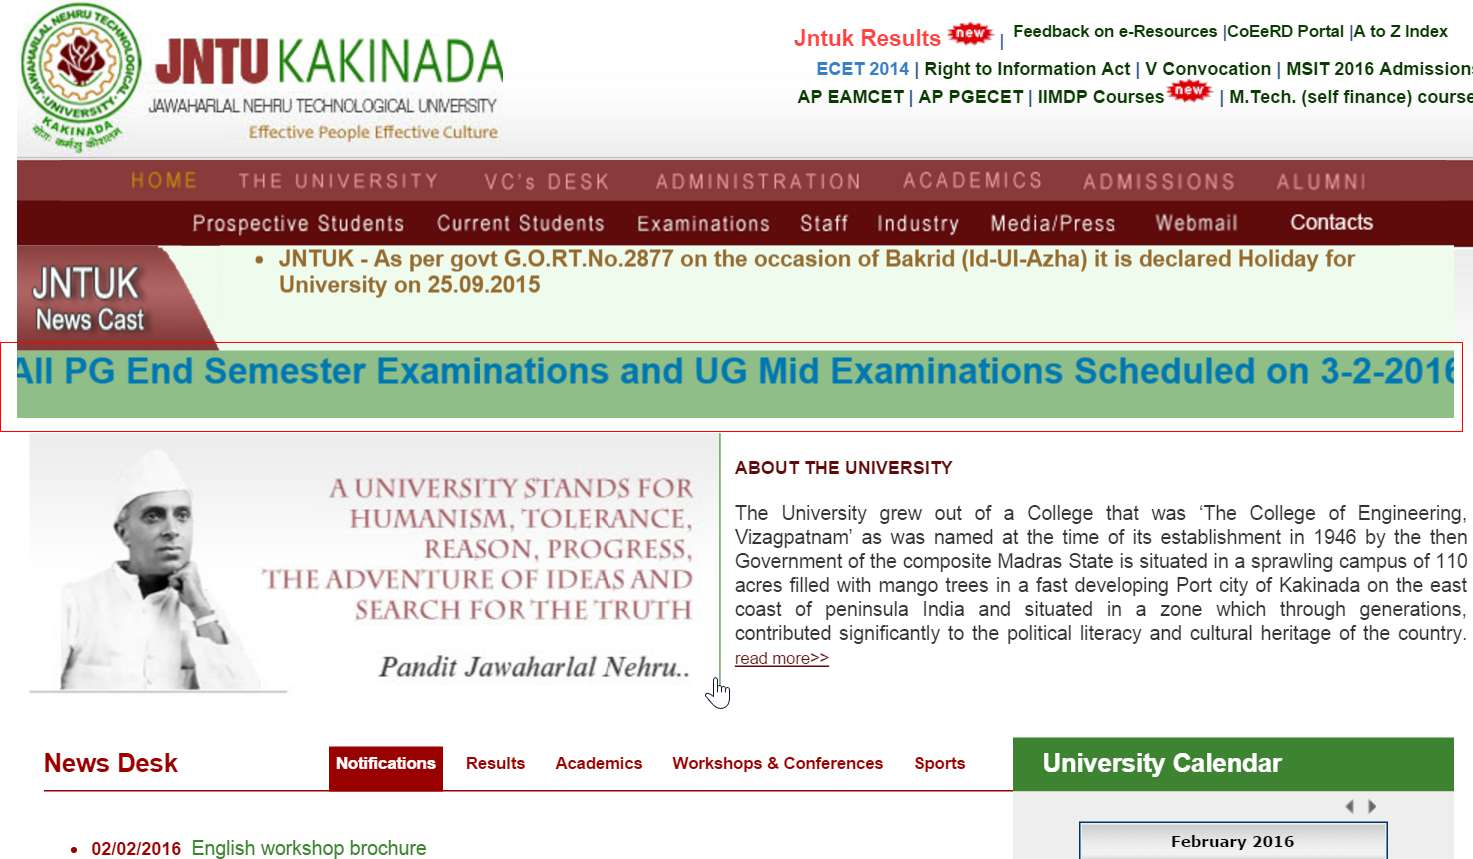 jntuk exams postponed on 3-2-16